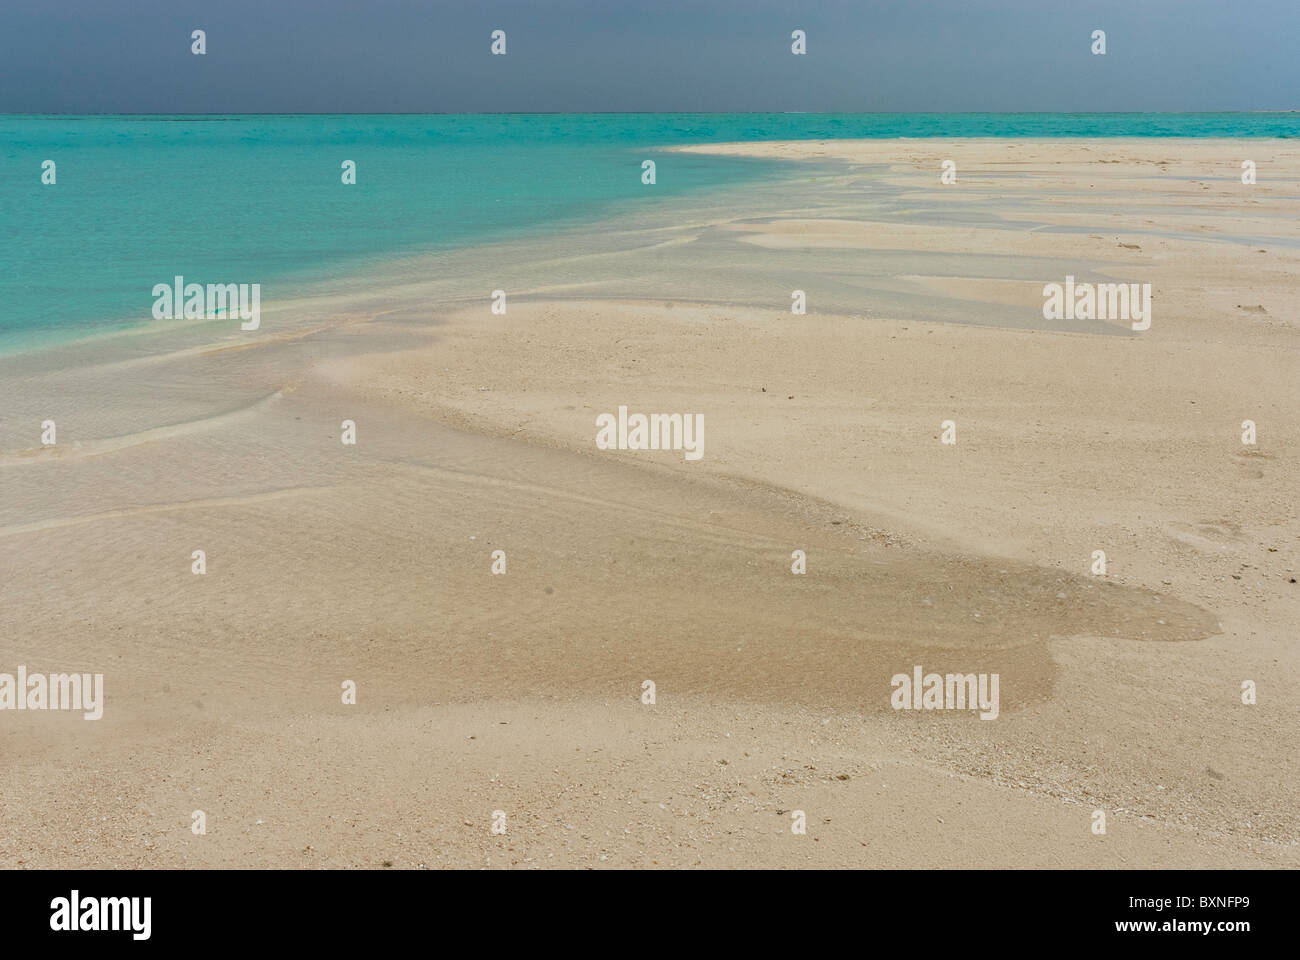 Sandbar next to a turquoise tropical sea under a dark stormy sky. Maldives, Indian Ocean. - Stock Image